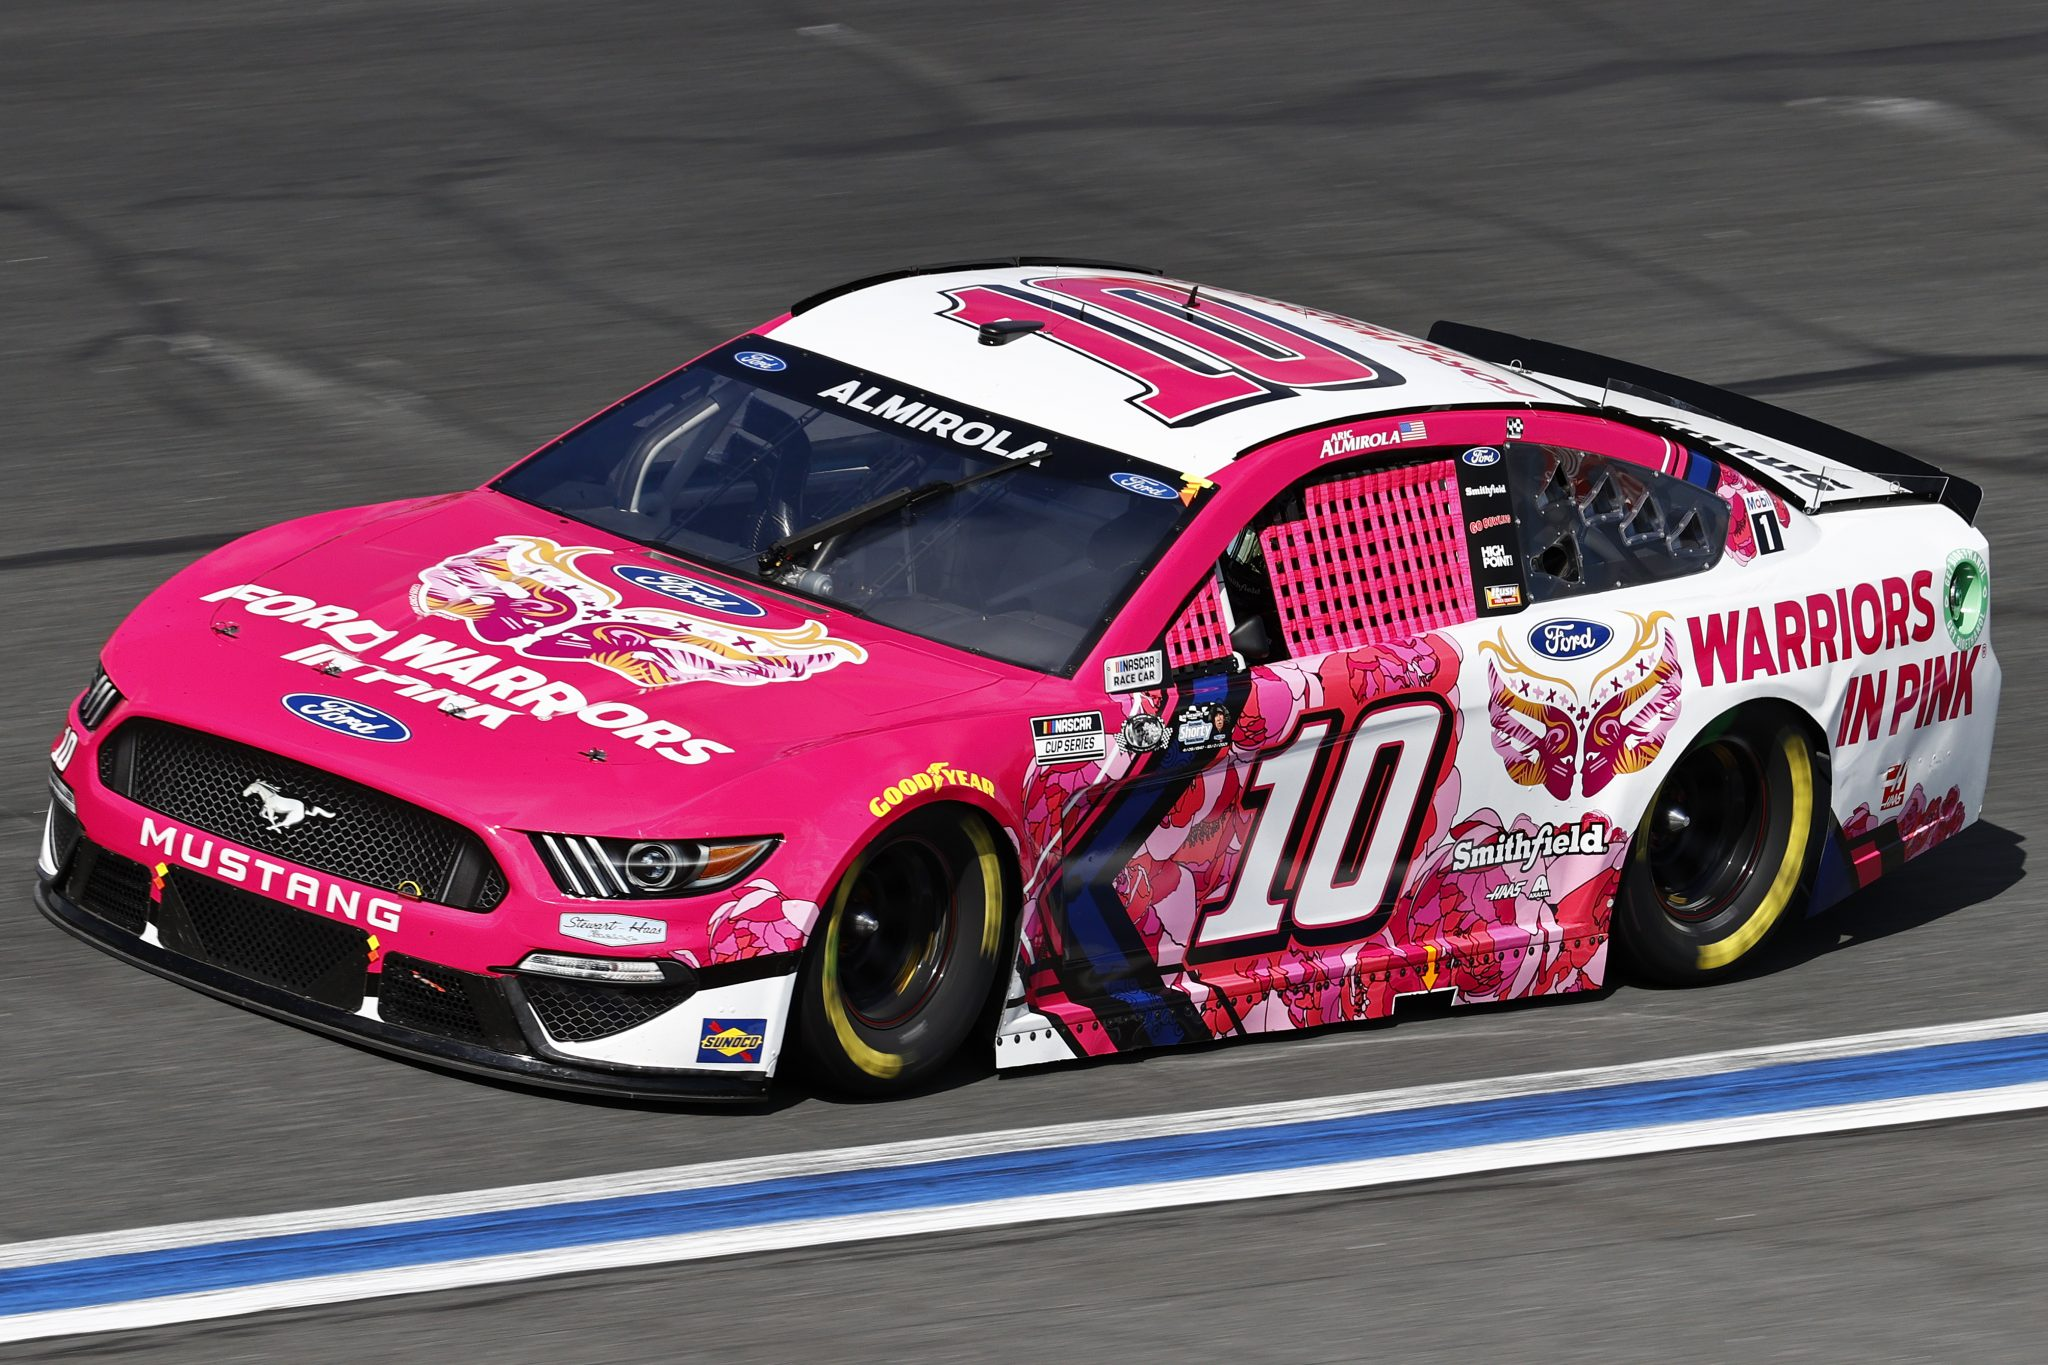 CONCORD, NORTH CAROLINA - OCTOBER 10: Aric Almirola, driver of the #10 Ford Warriors in Pink Ford, drives during the NASCAR Cup Series Bank of America ROVAL 400 at Charlotte Motor Speedway on October 10, 2021 in Concord, North Carolina. (Photo by Jared C. Tilton/Getty Images) | Getty Images